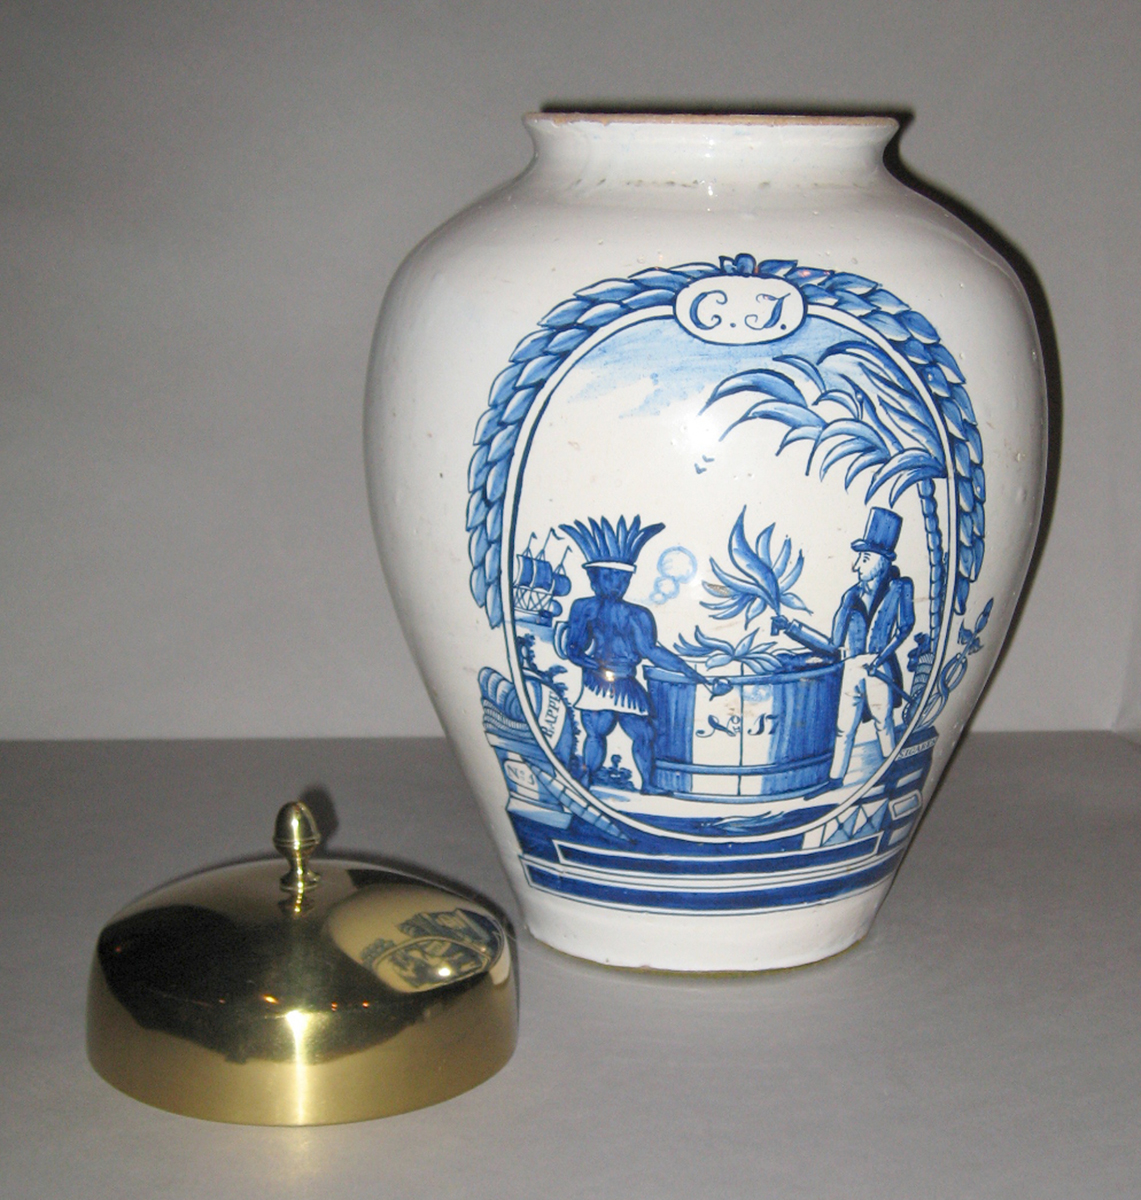 1952.0312.002 Dutch Delft tobacco jar